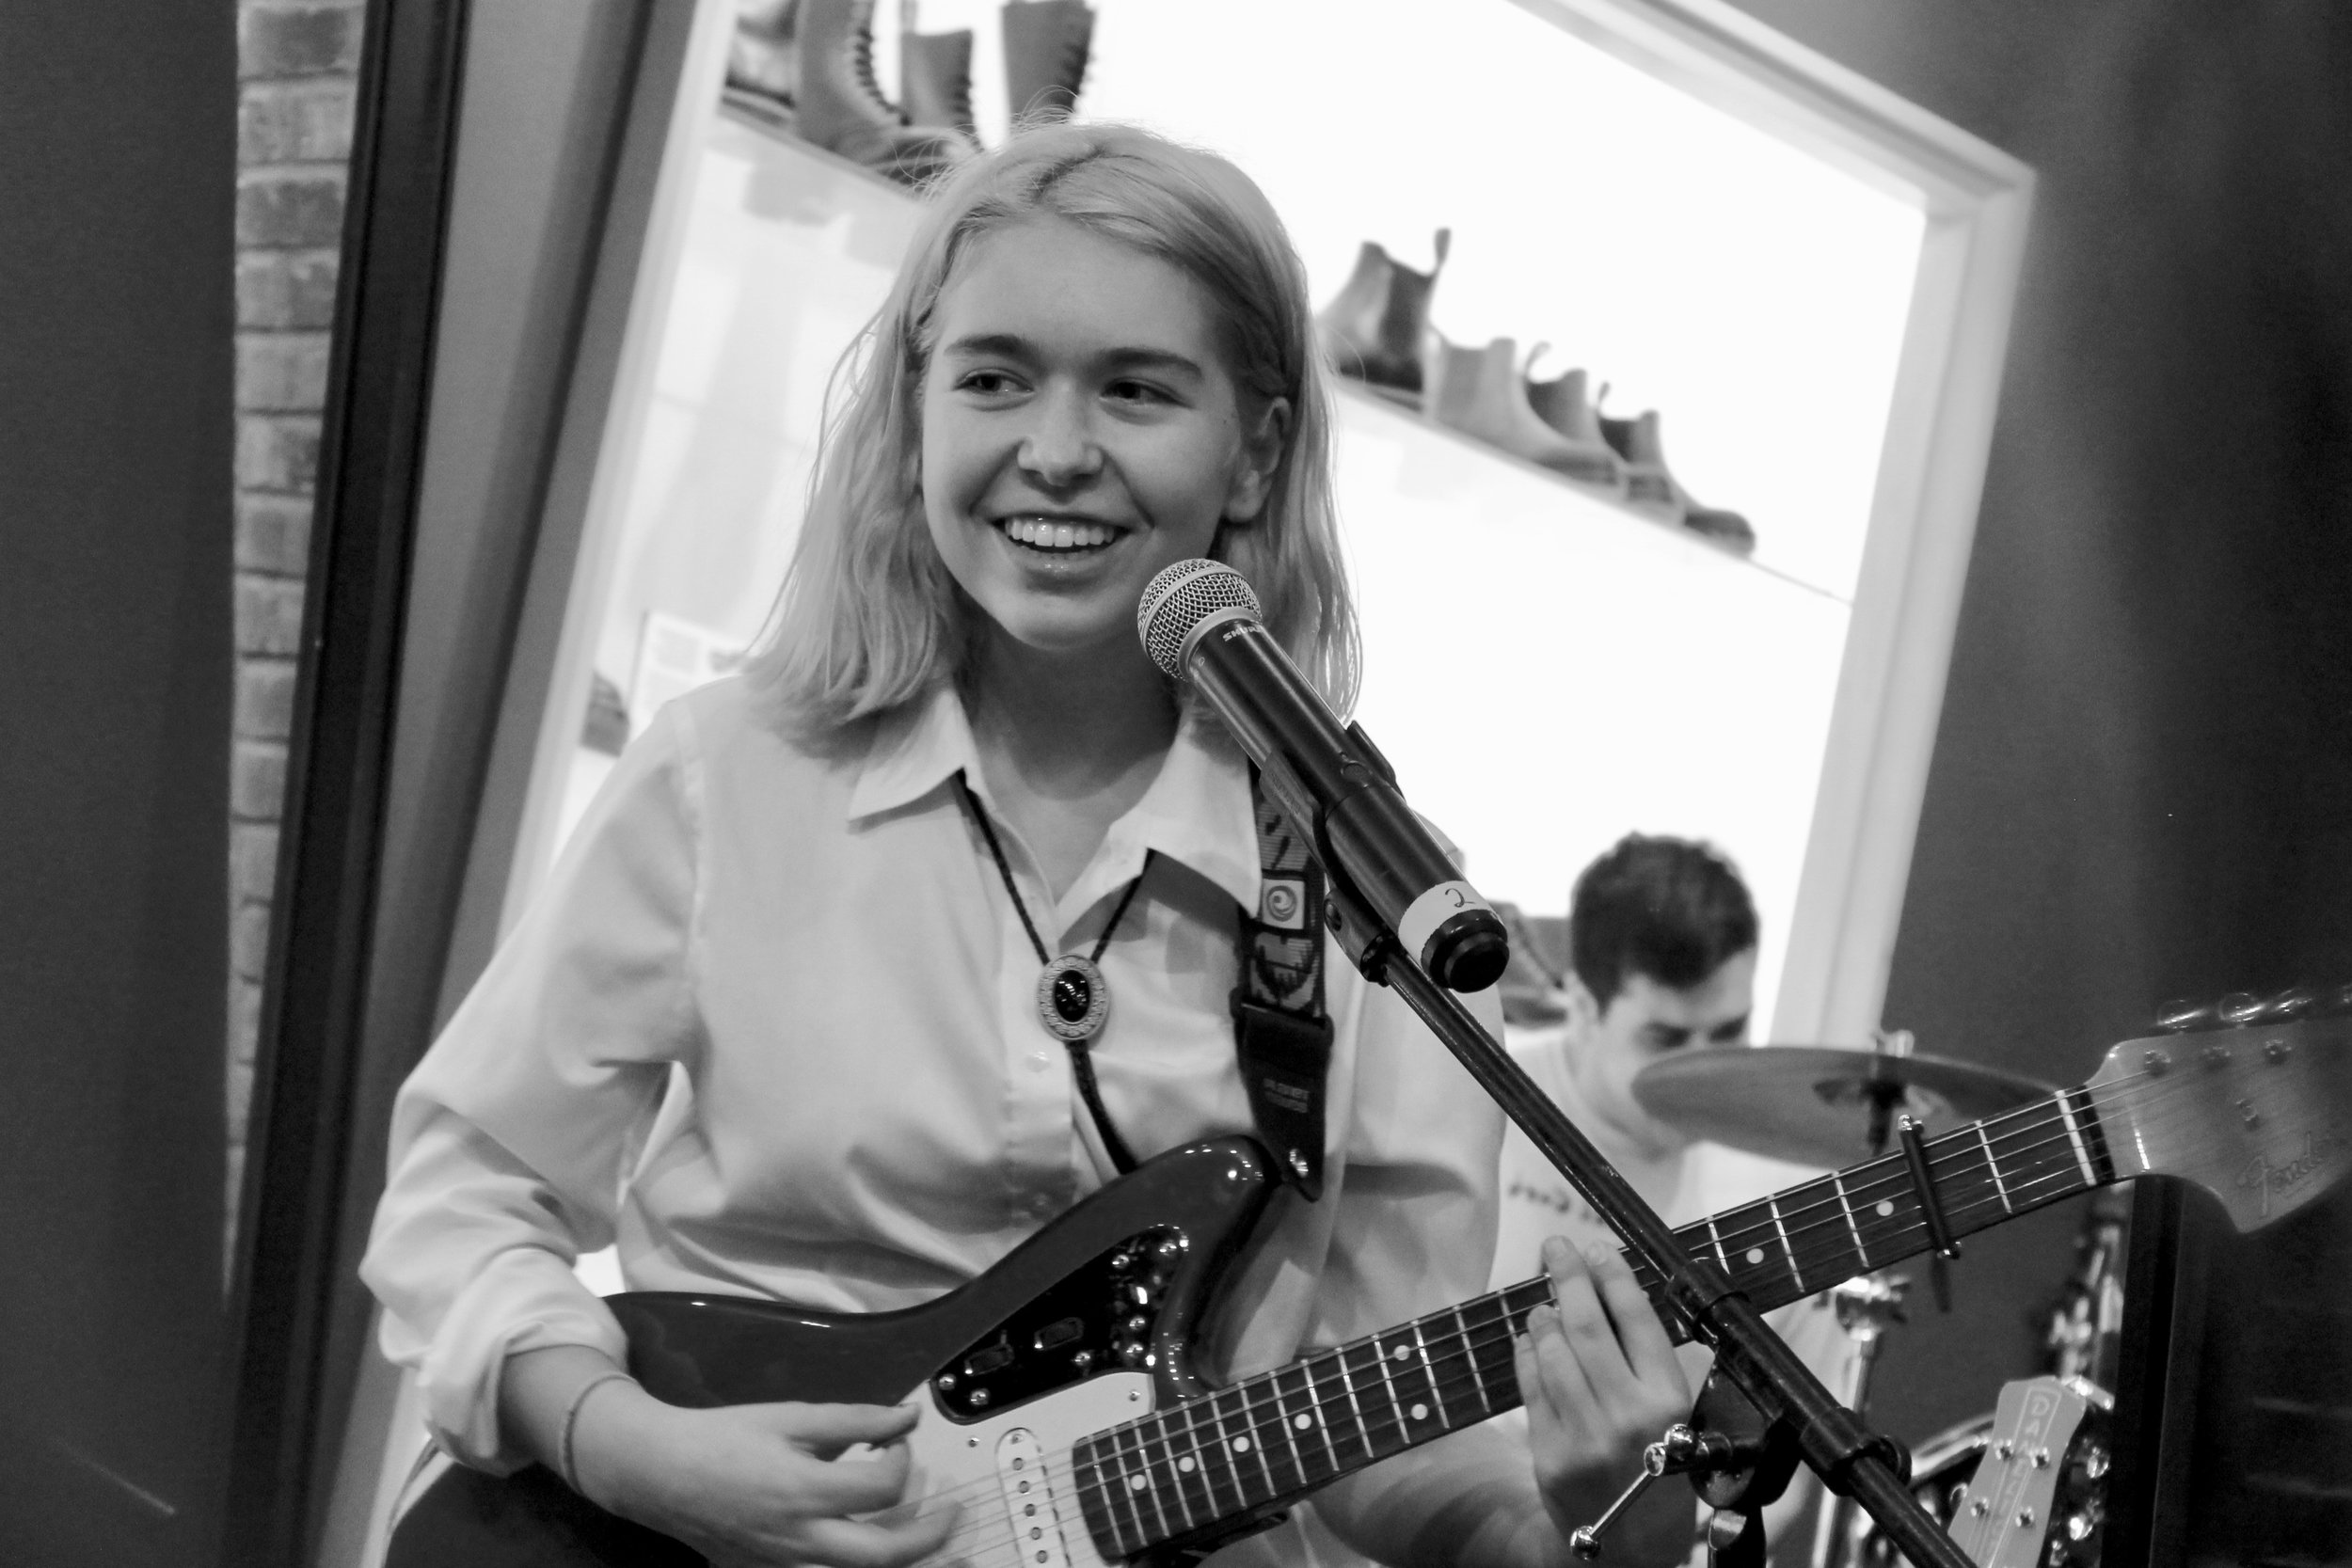 Snail Mail @ Dr. Martens Georgetown - On November 2nd, Snail Mail played a free show at the Dr. Martens store in Georgetown. The event, which took place in a shoe-box shaped storefront, felt more expansive than the compact and crowded room would have seemingly allowed. This theme is strikingly similar to the band itself.